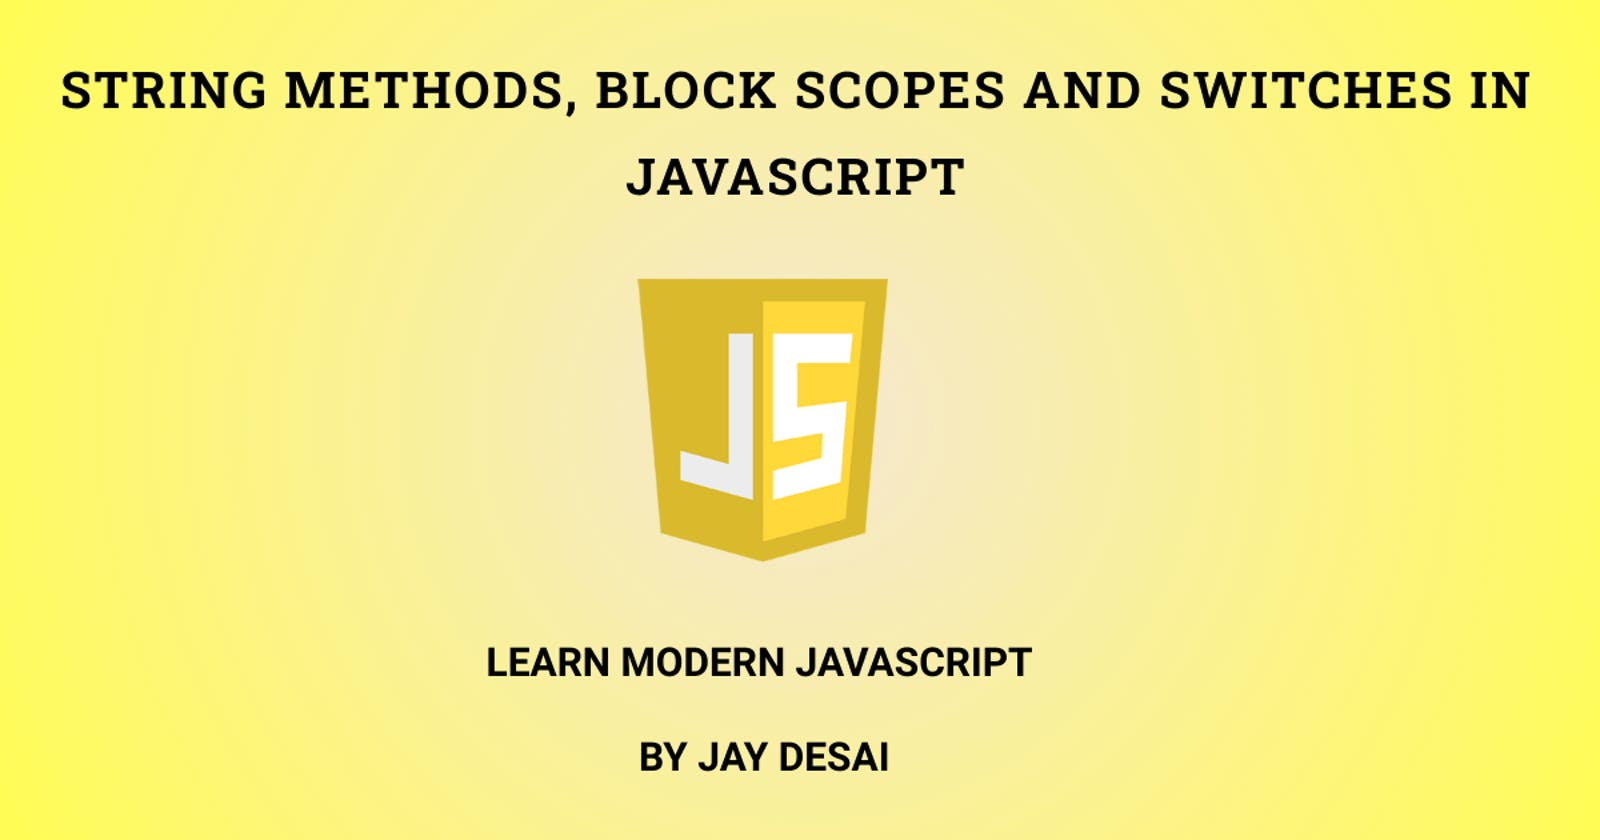 String Methods, Scopes and Switches in Javascript